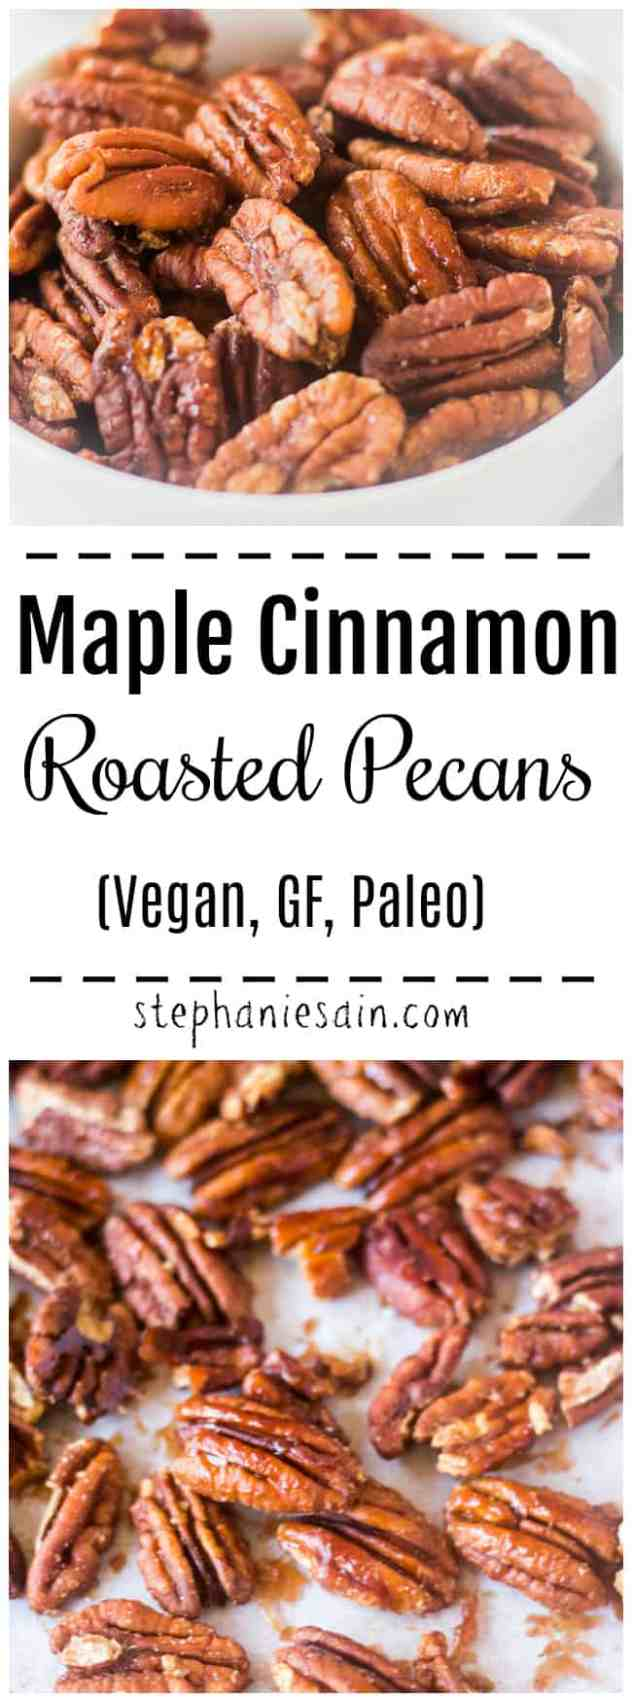 These Maple Cinnamon Roasted Pecans are made with only 4 ingredients and under 15 minutes. Great for snacks, holidays, & parties. Vegan, GF, Paleo, & No added refined sugar.